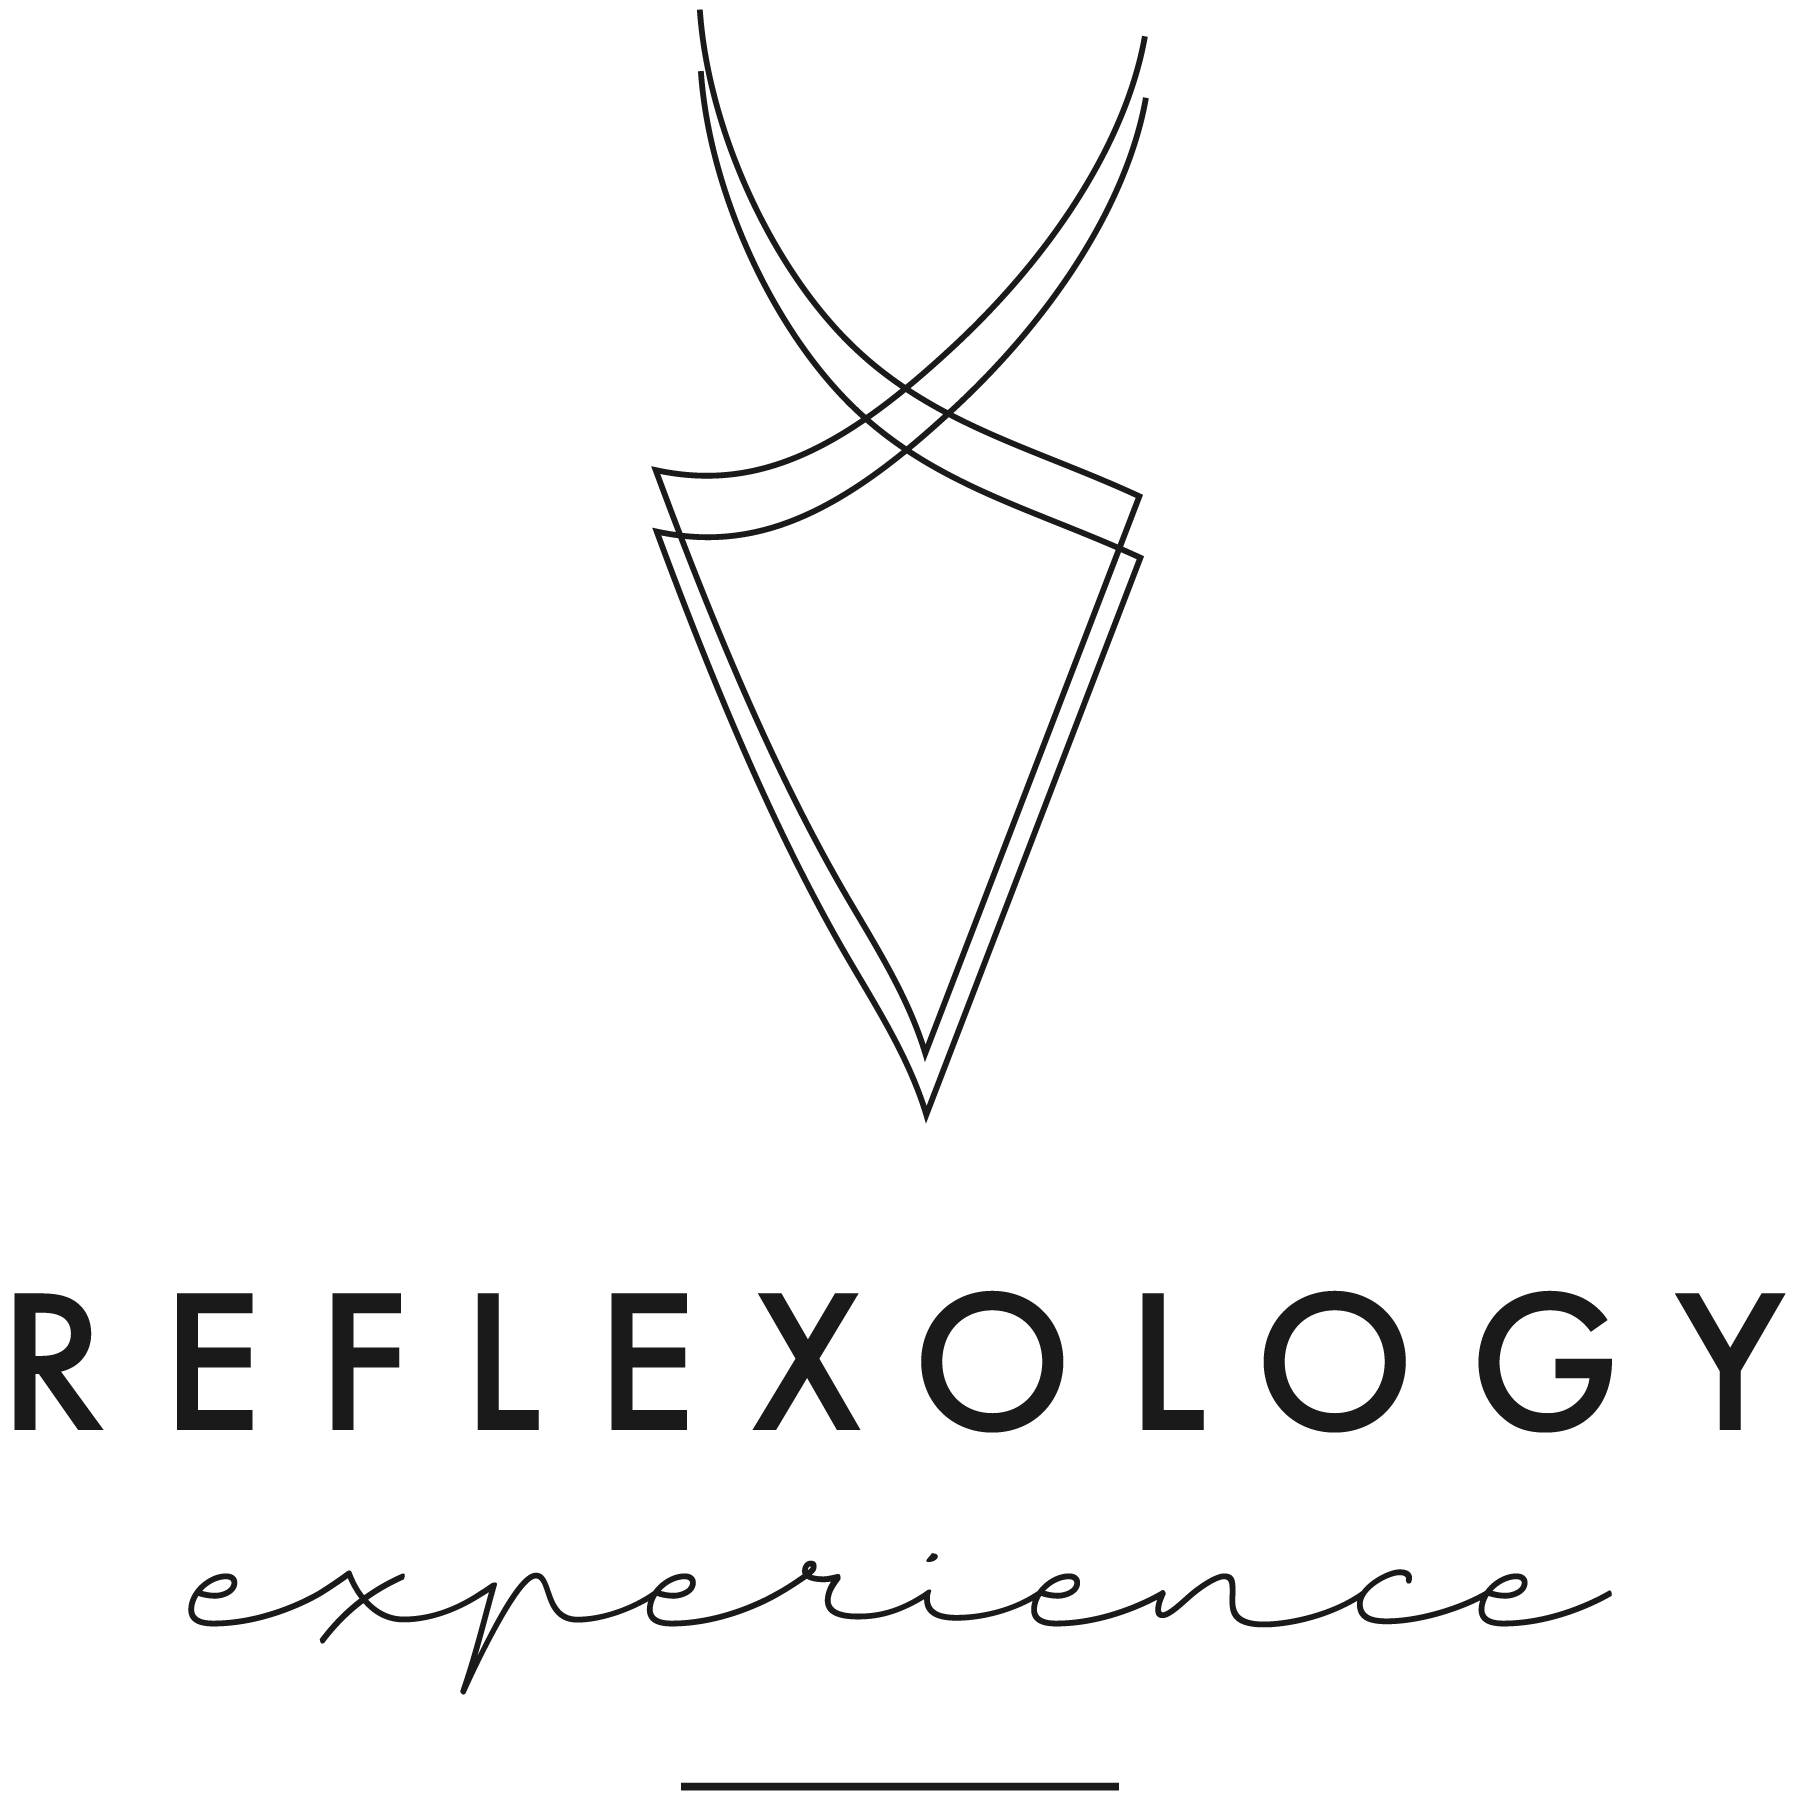 The Reflexology Experience Treatments Courses Multireflex Tools